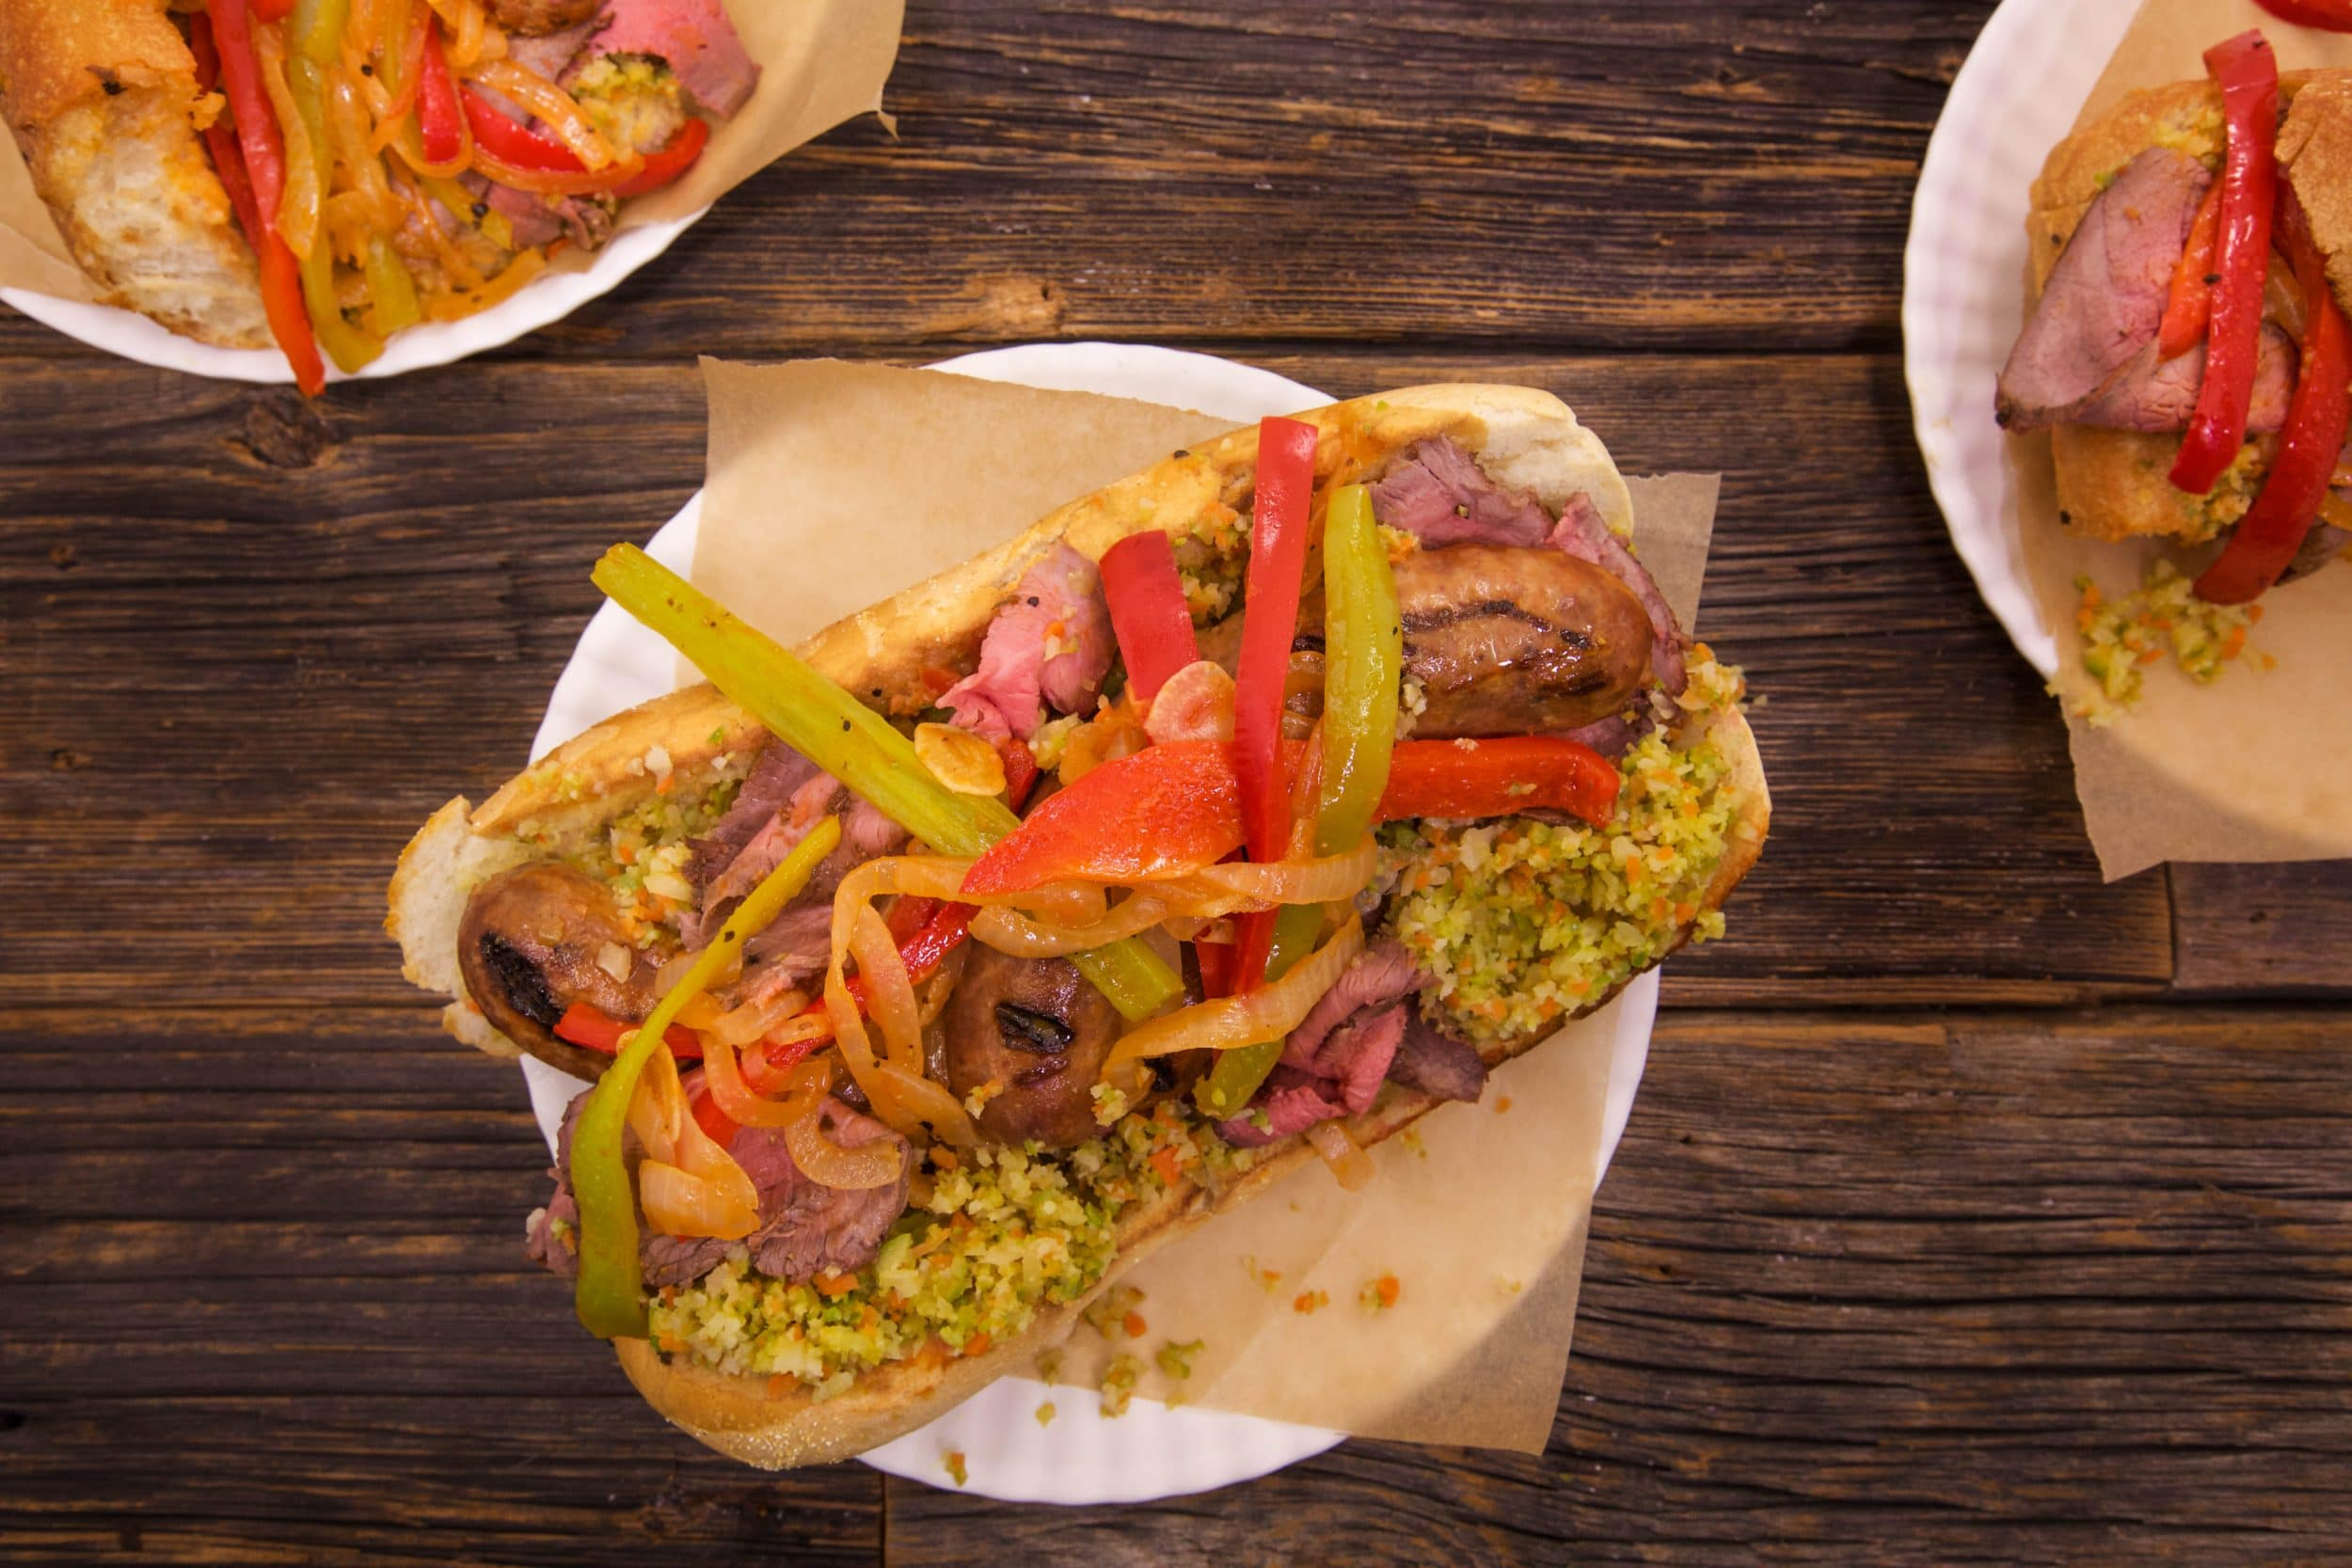 Italian Combo Hoagies with Roast Beef, Hot Sausage, Peppers and Onions